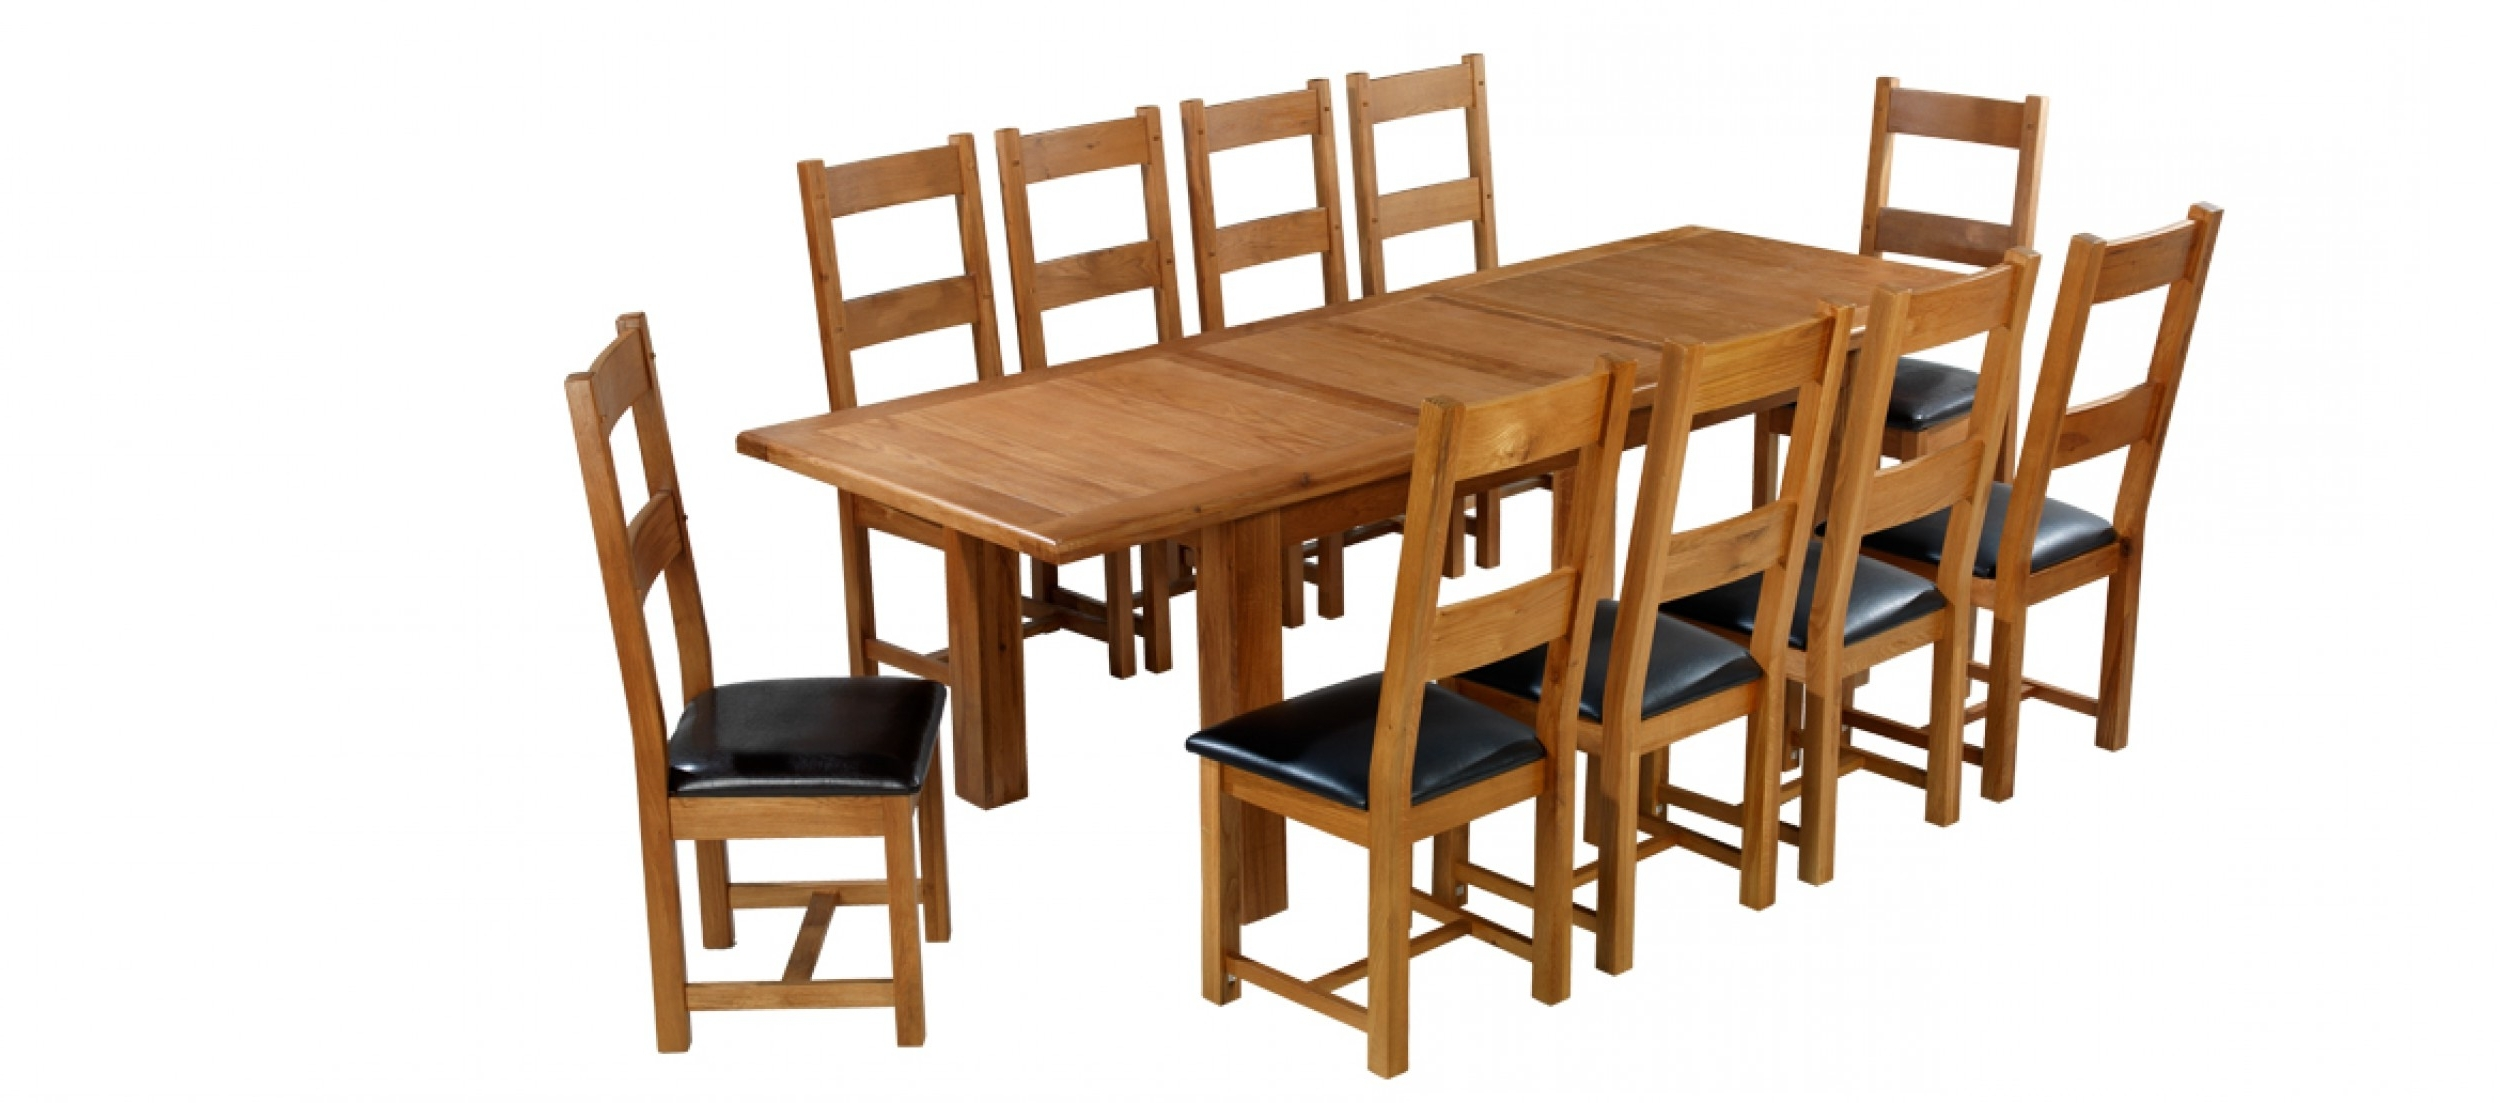 Extending Dining Tables Sets Regarding Most Current Barham Oak 180 250 Cm Extending Dining Table And 10 Chairs (View 8 of 25)